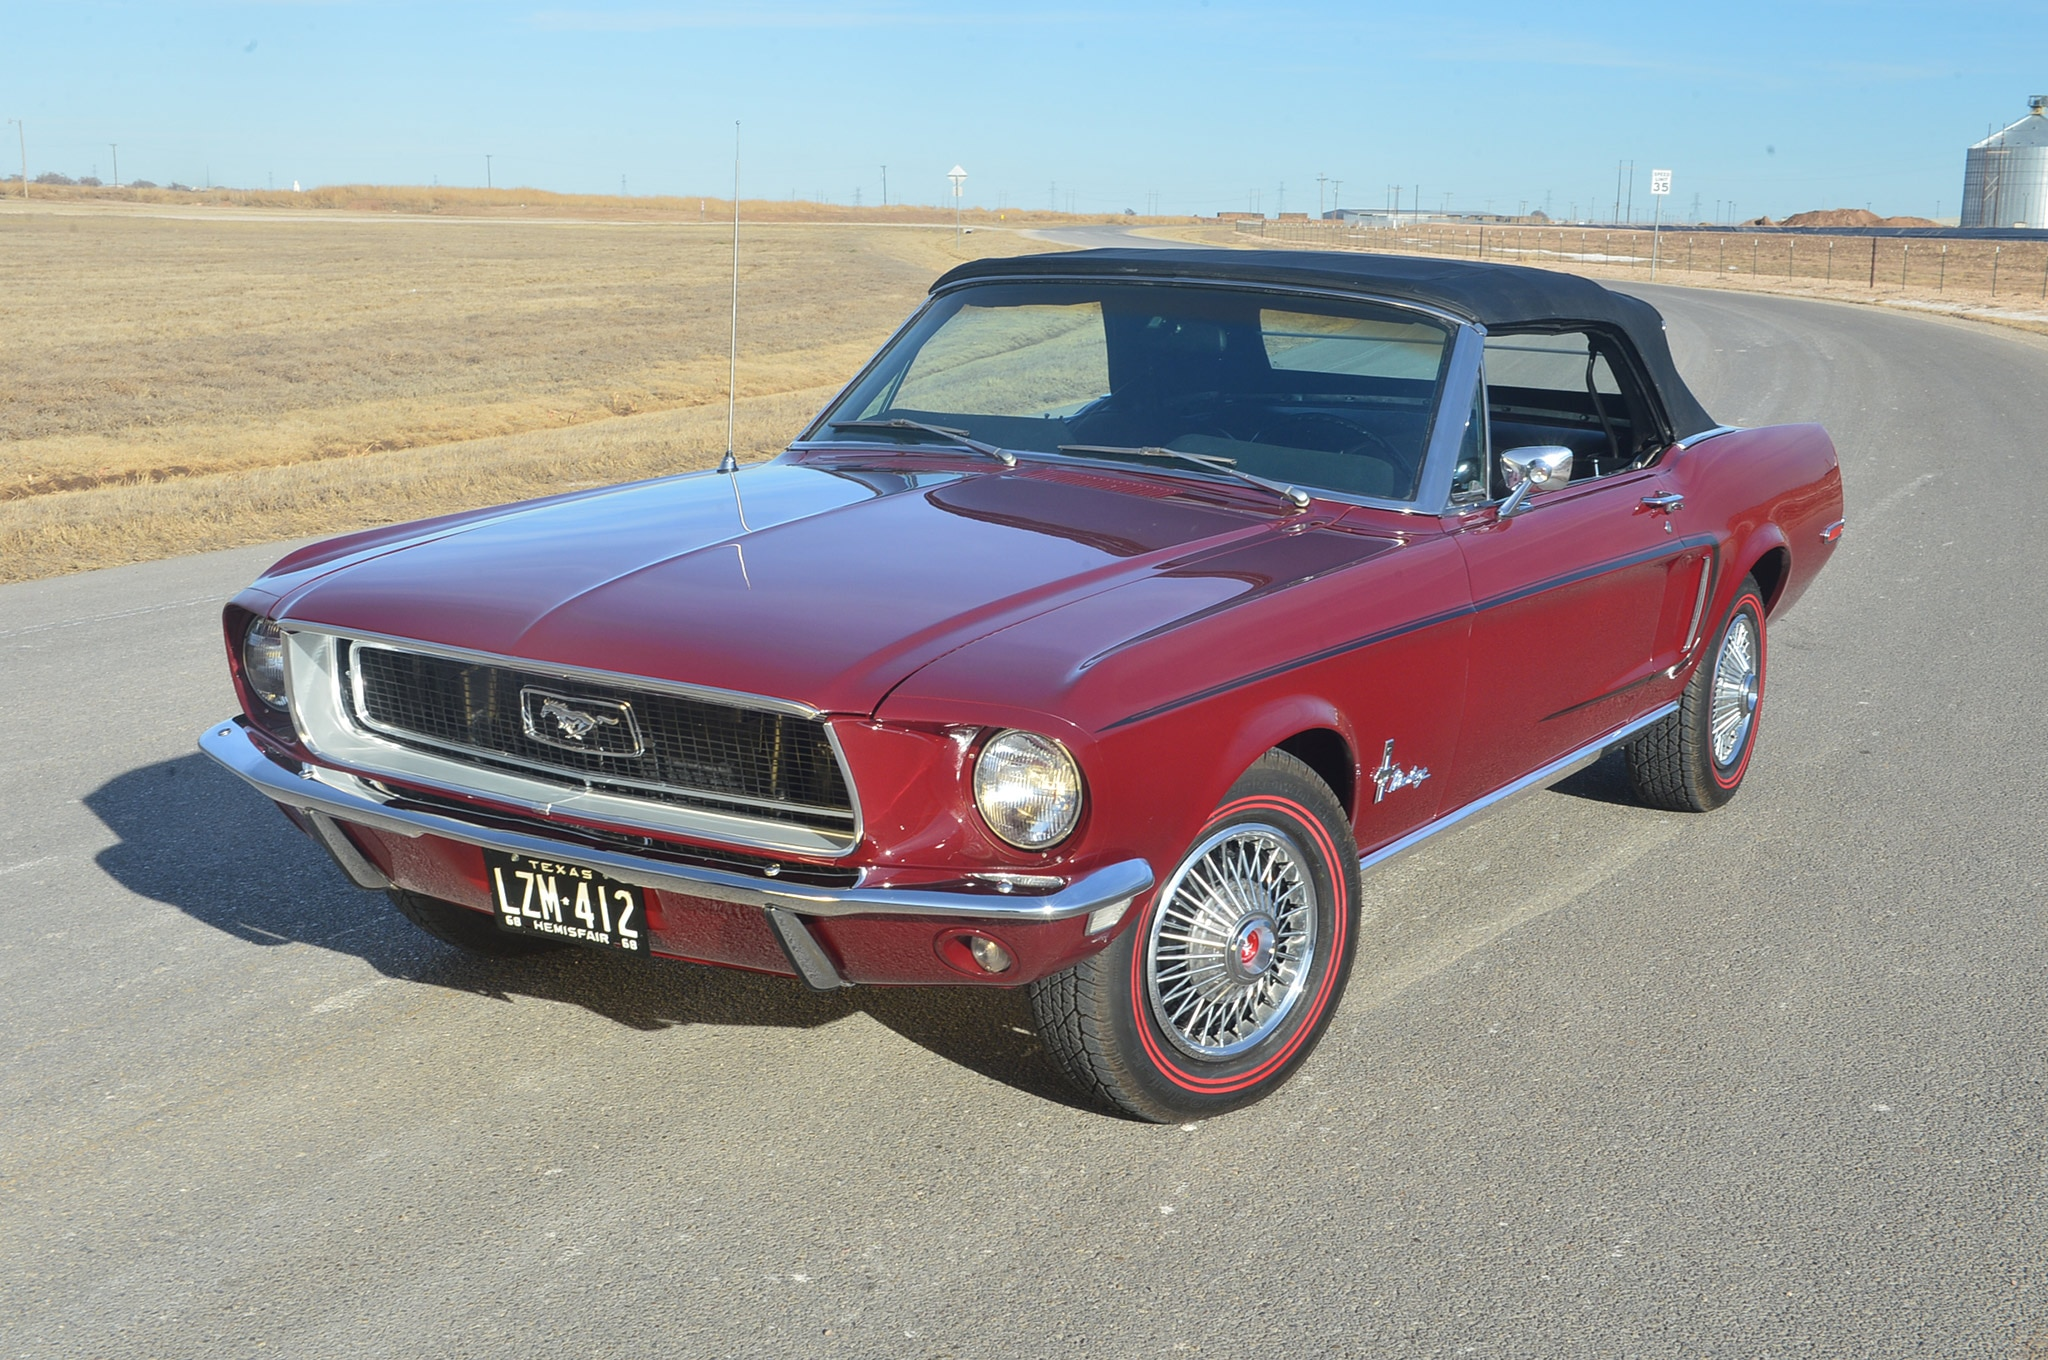 1968 Ford Mustang Convertible Project Front Quarter View